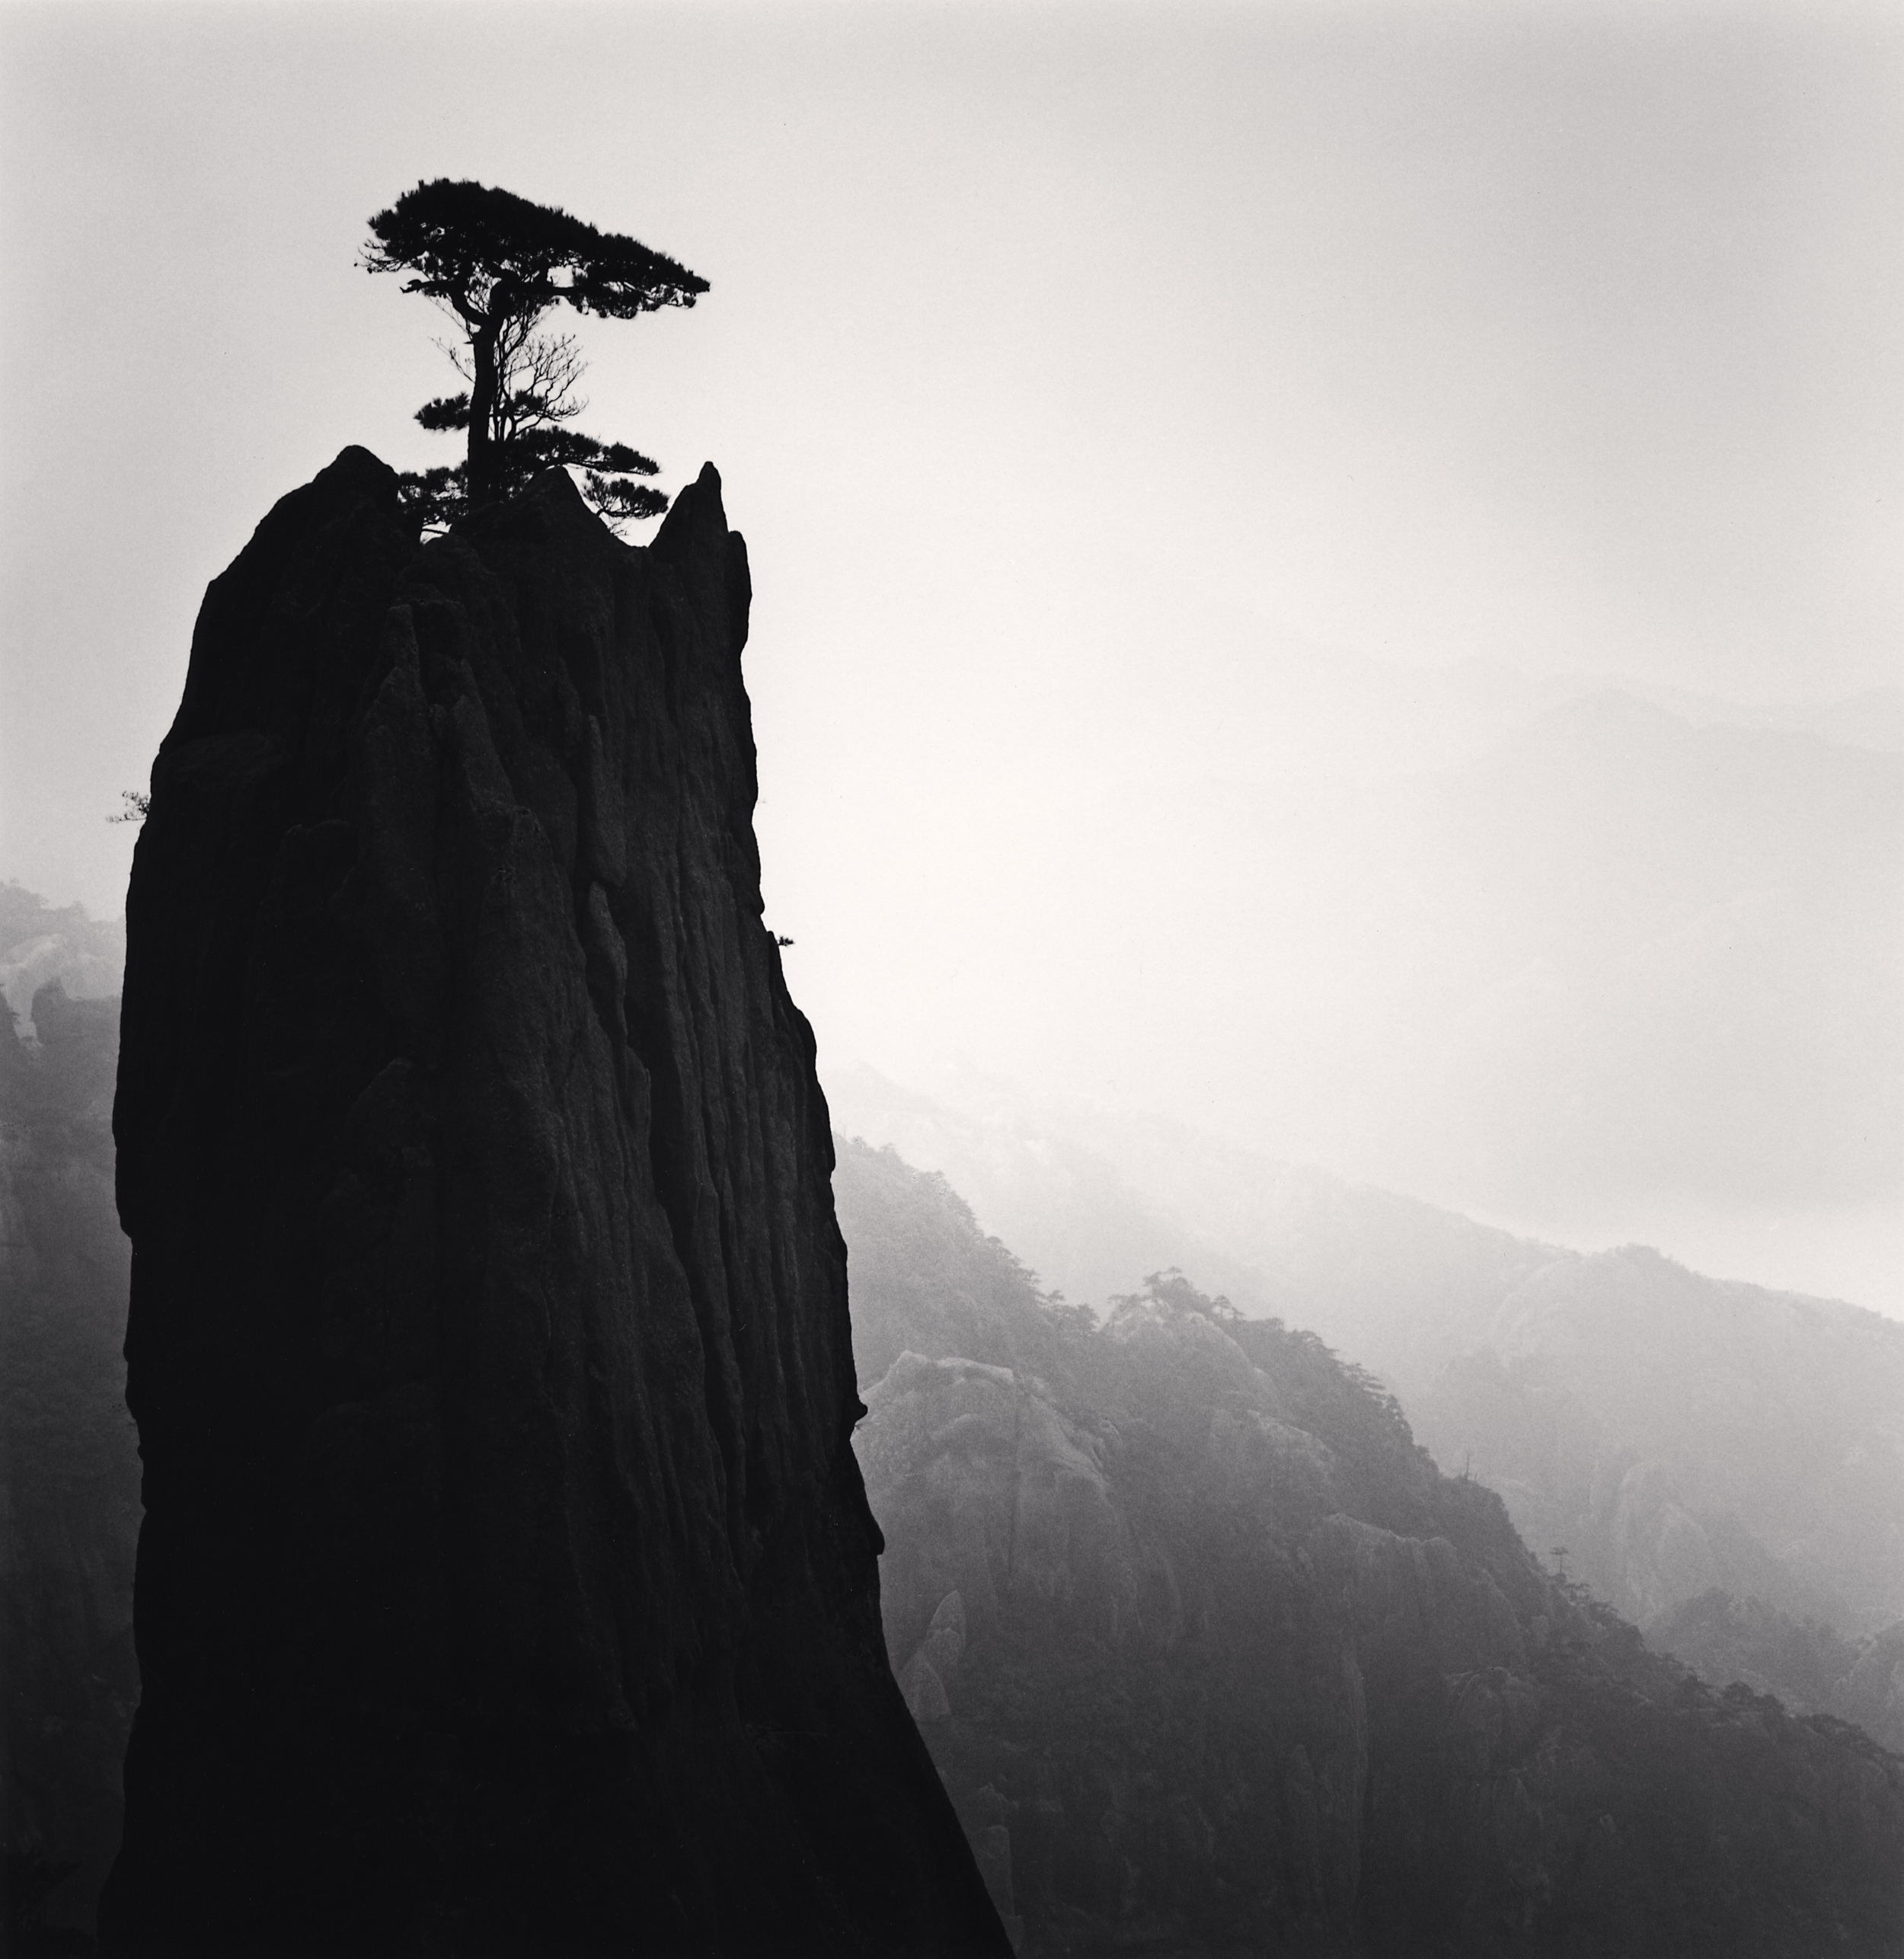 Huangshan Mountains, Study 21, Anhui, China, 2009.jpg